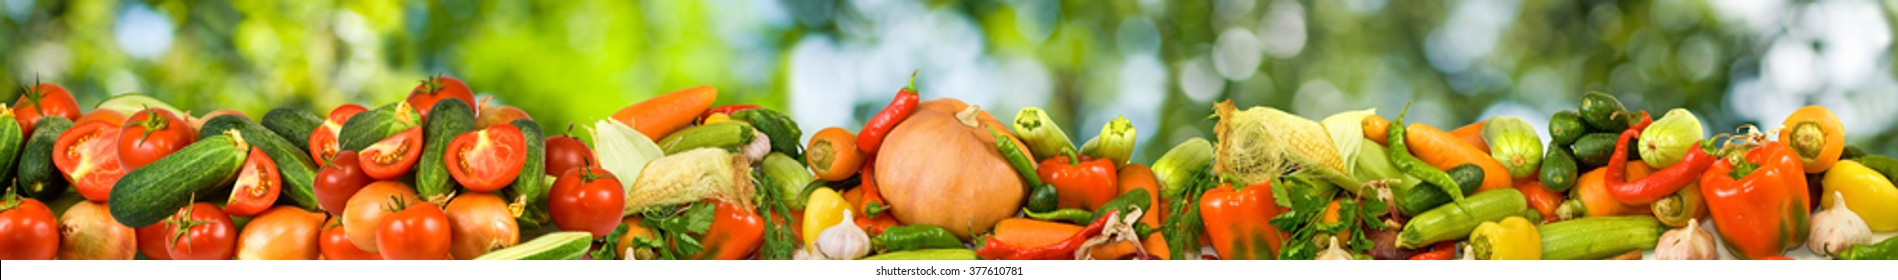 image of many raw vegetables on a green background close-up